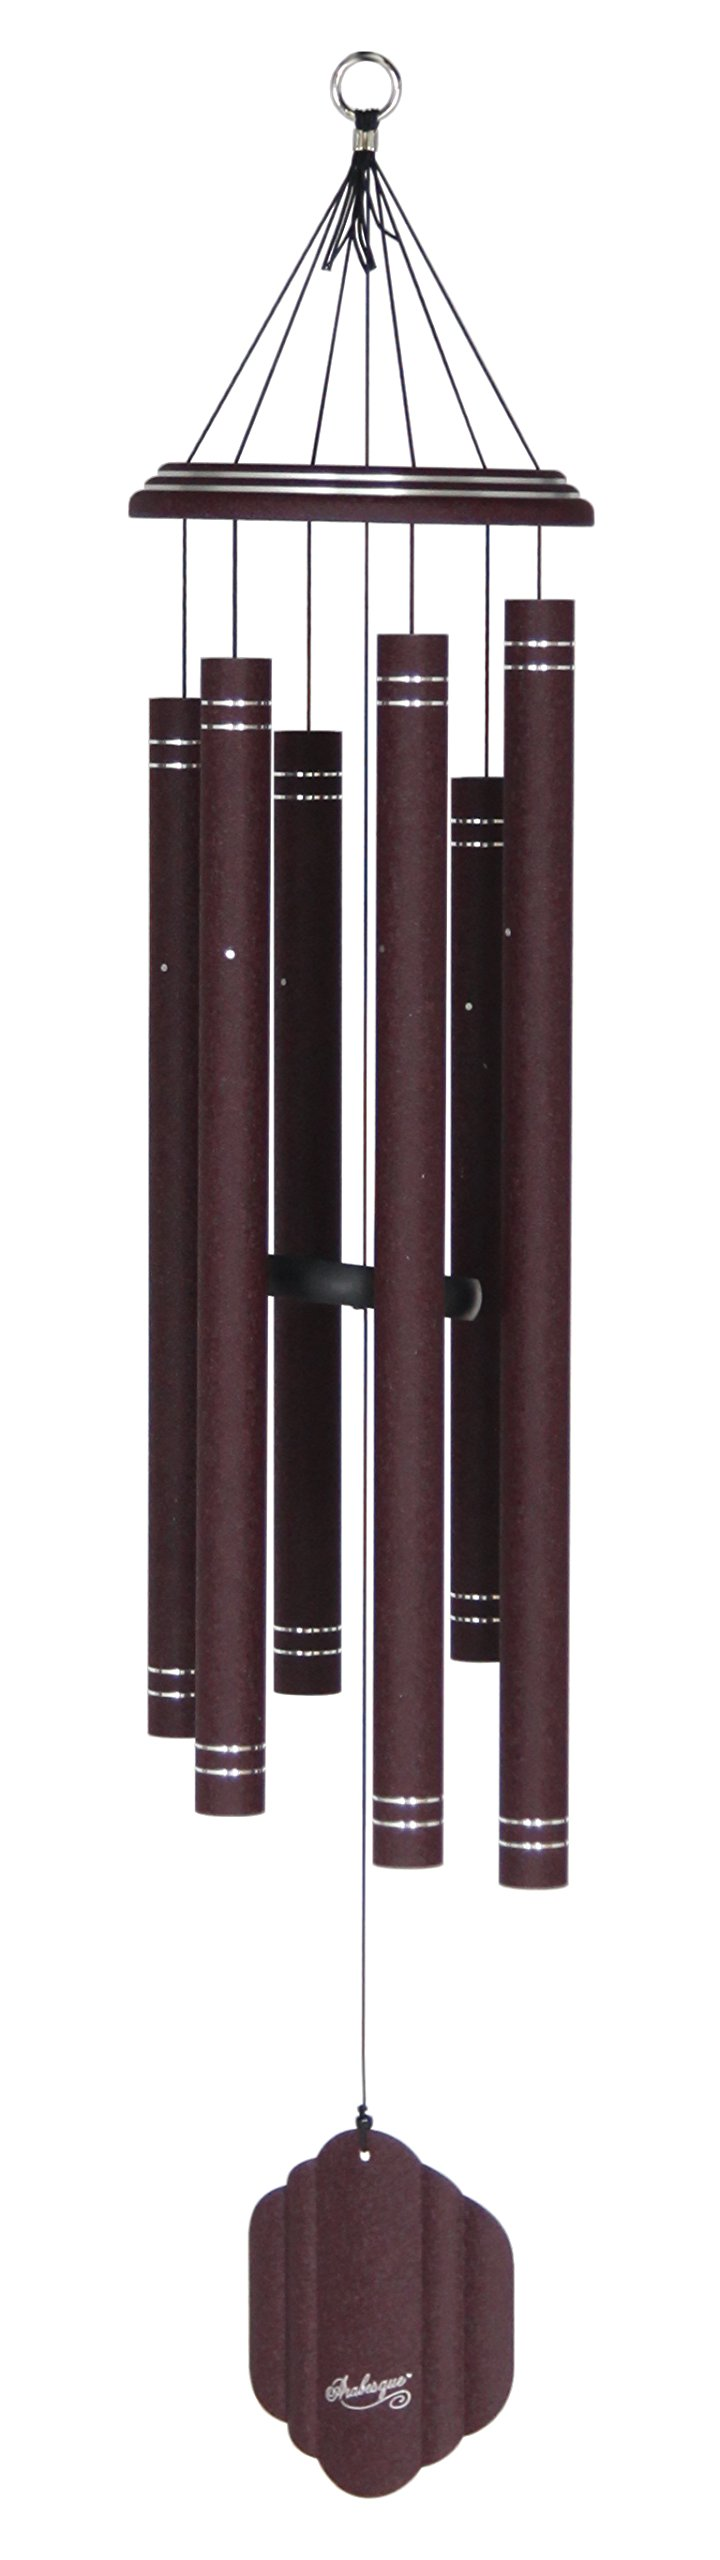 Arabesque 44-inch Windchime, Garnet